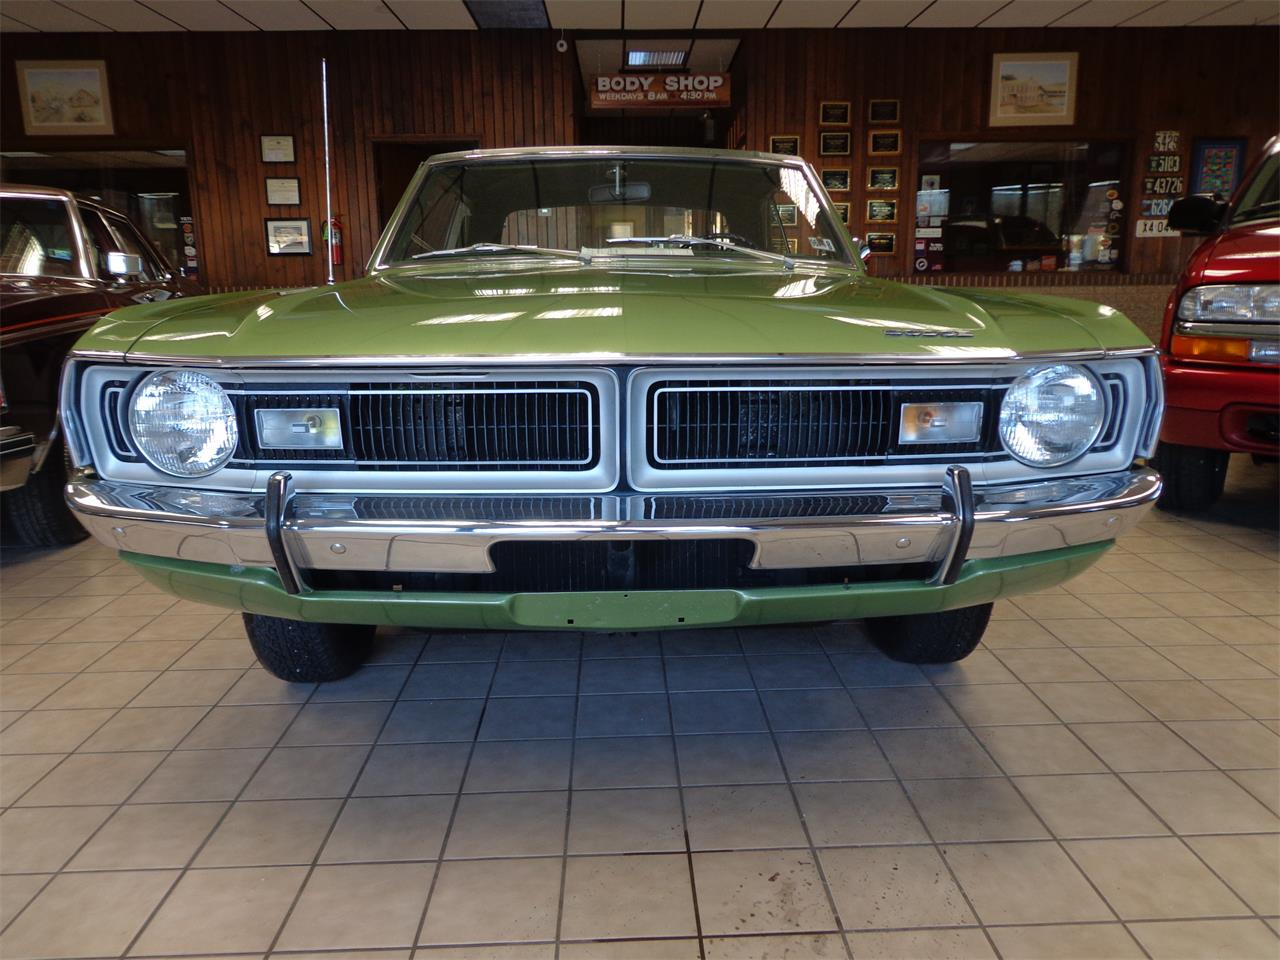 1971 Dodge Dart Swinger for sale in Mill Hall, PA – photo 2